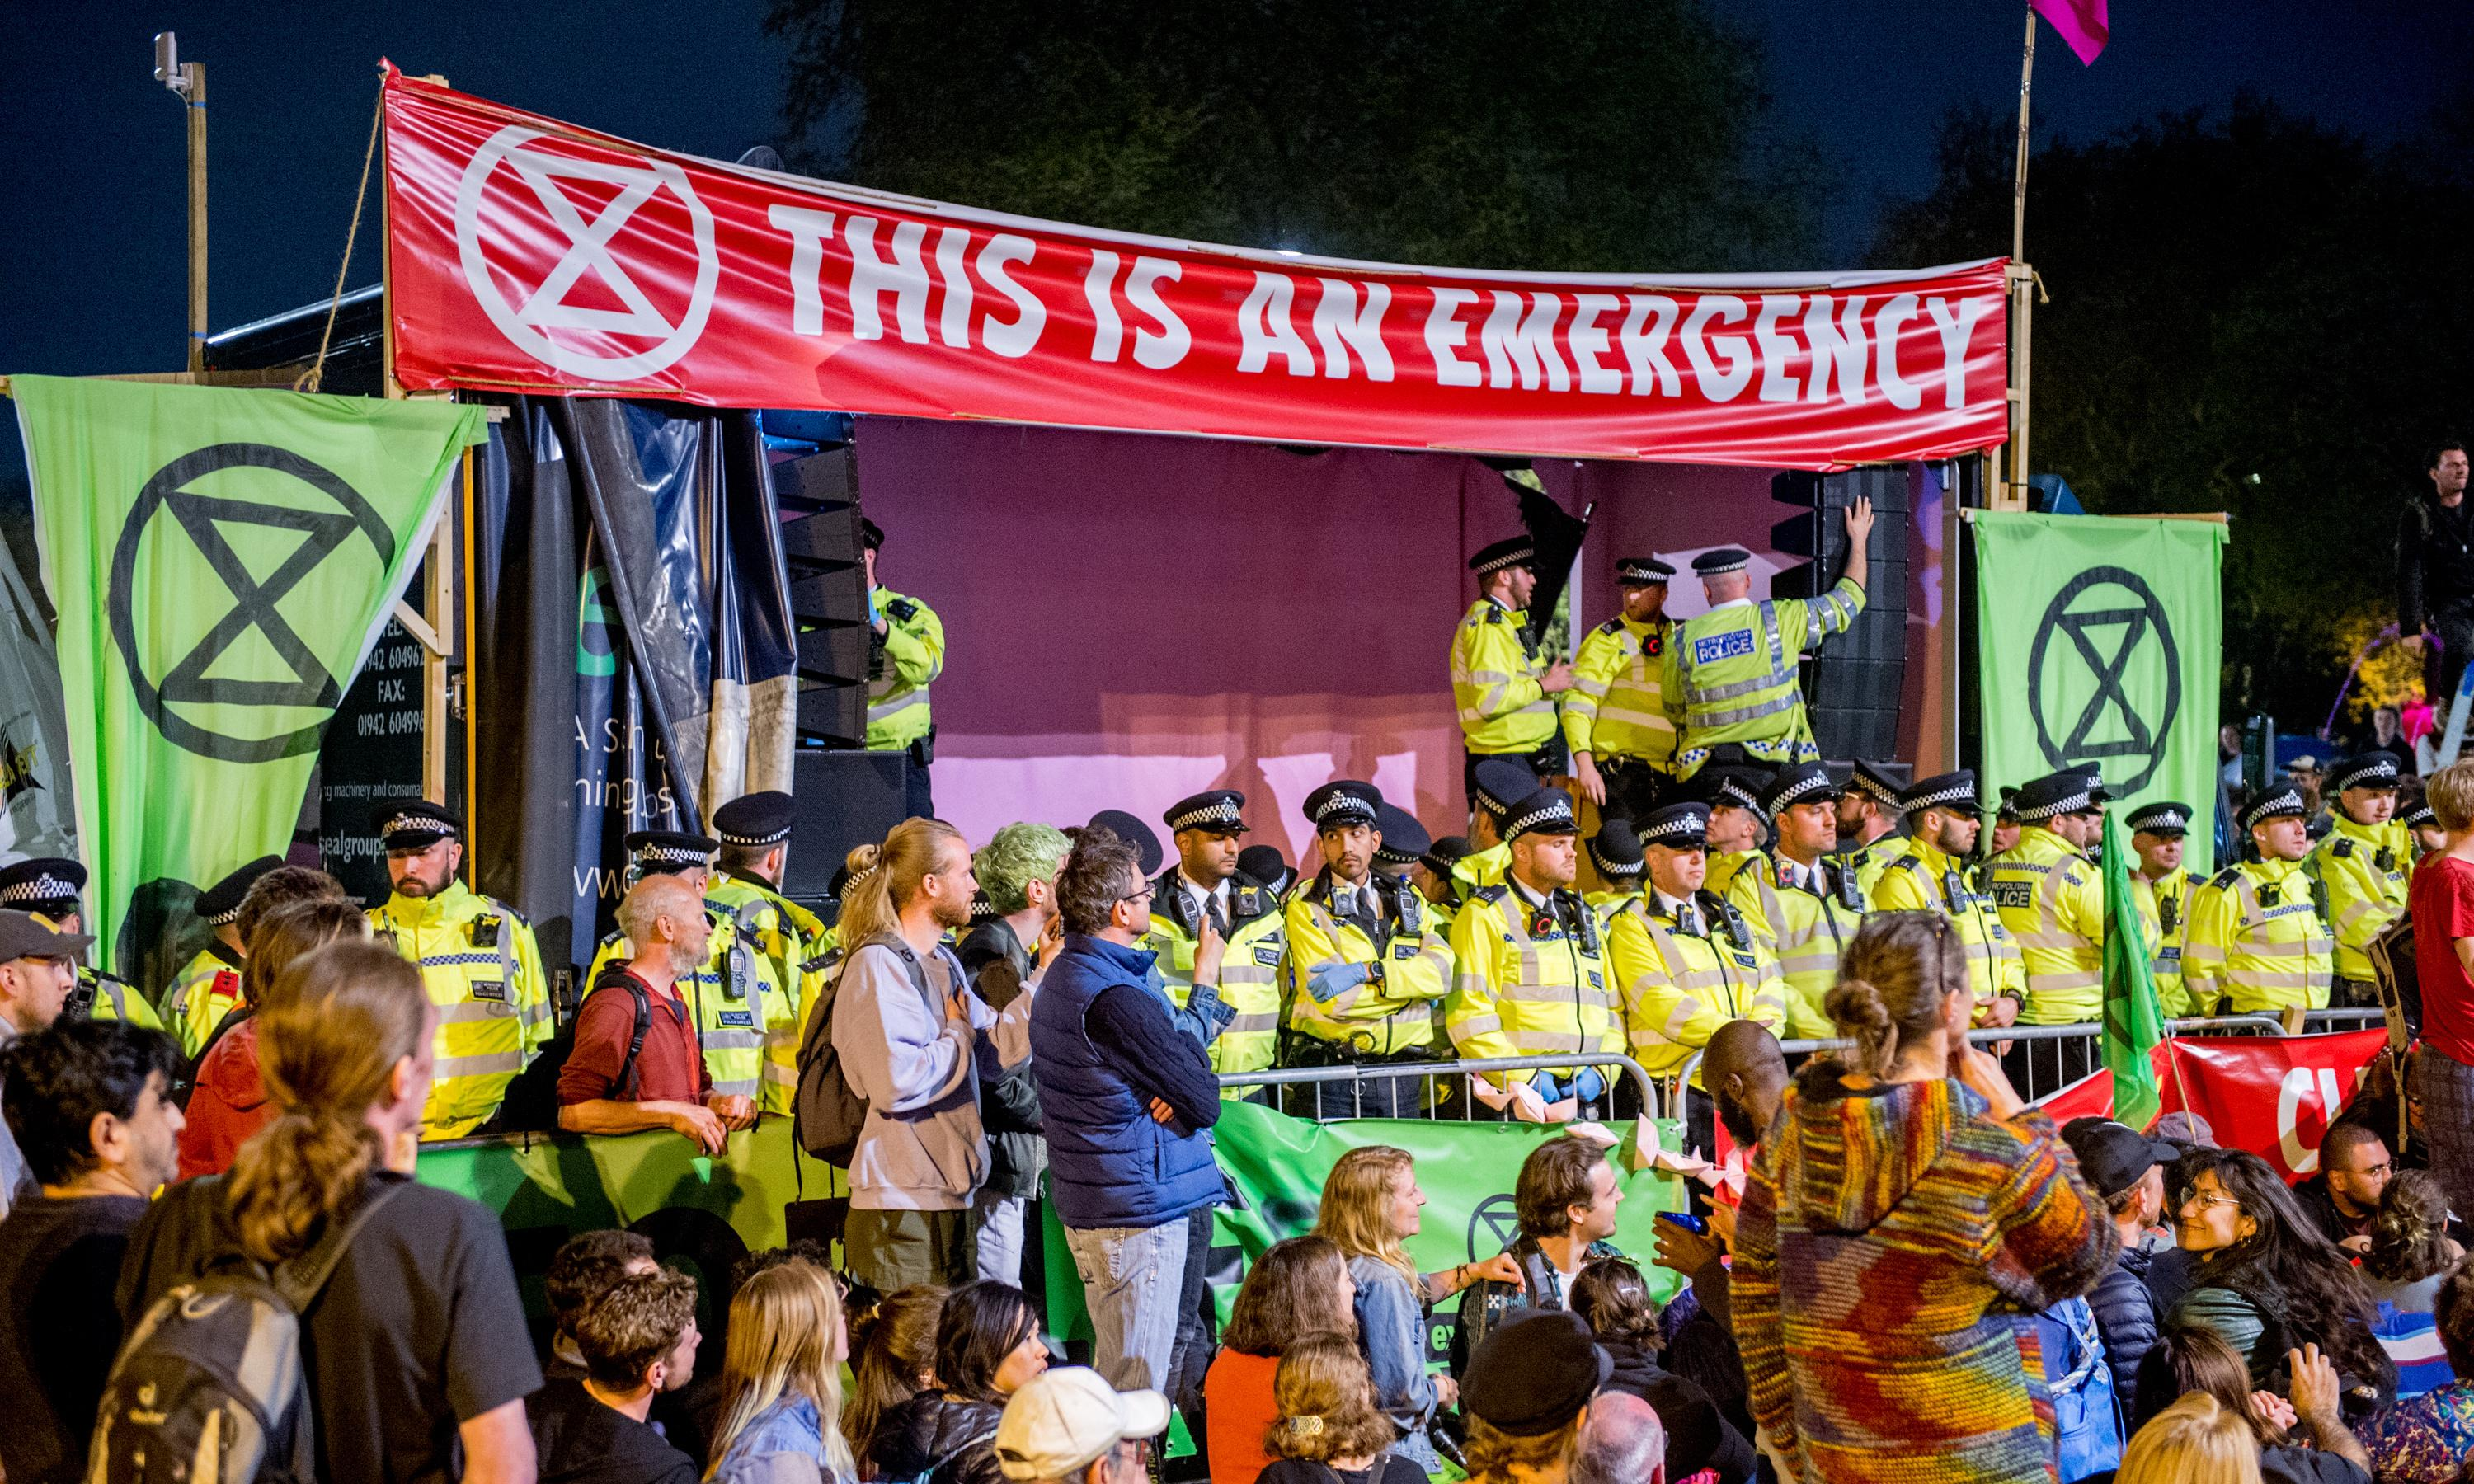 Extinction Rebellion activists convicted of public order offences